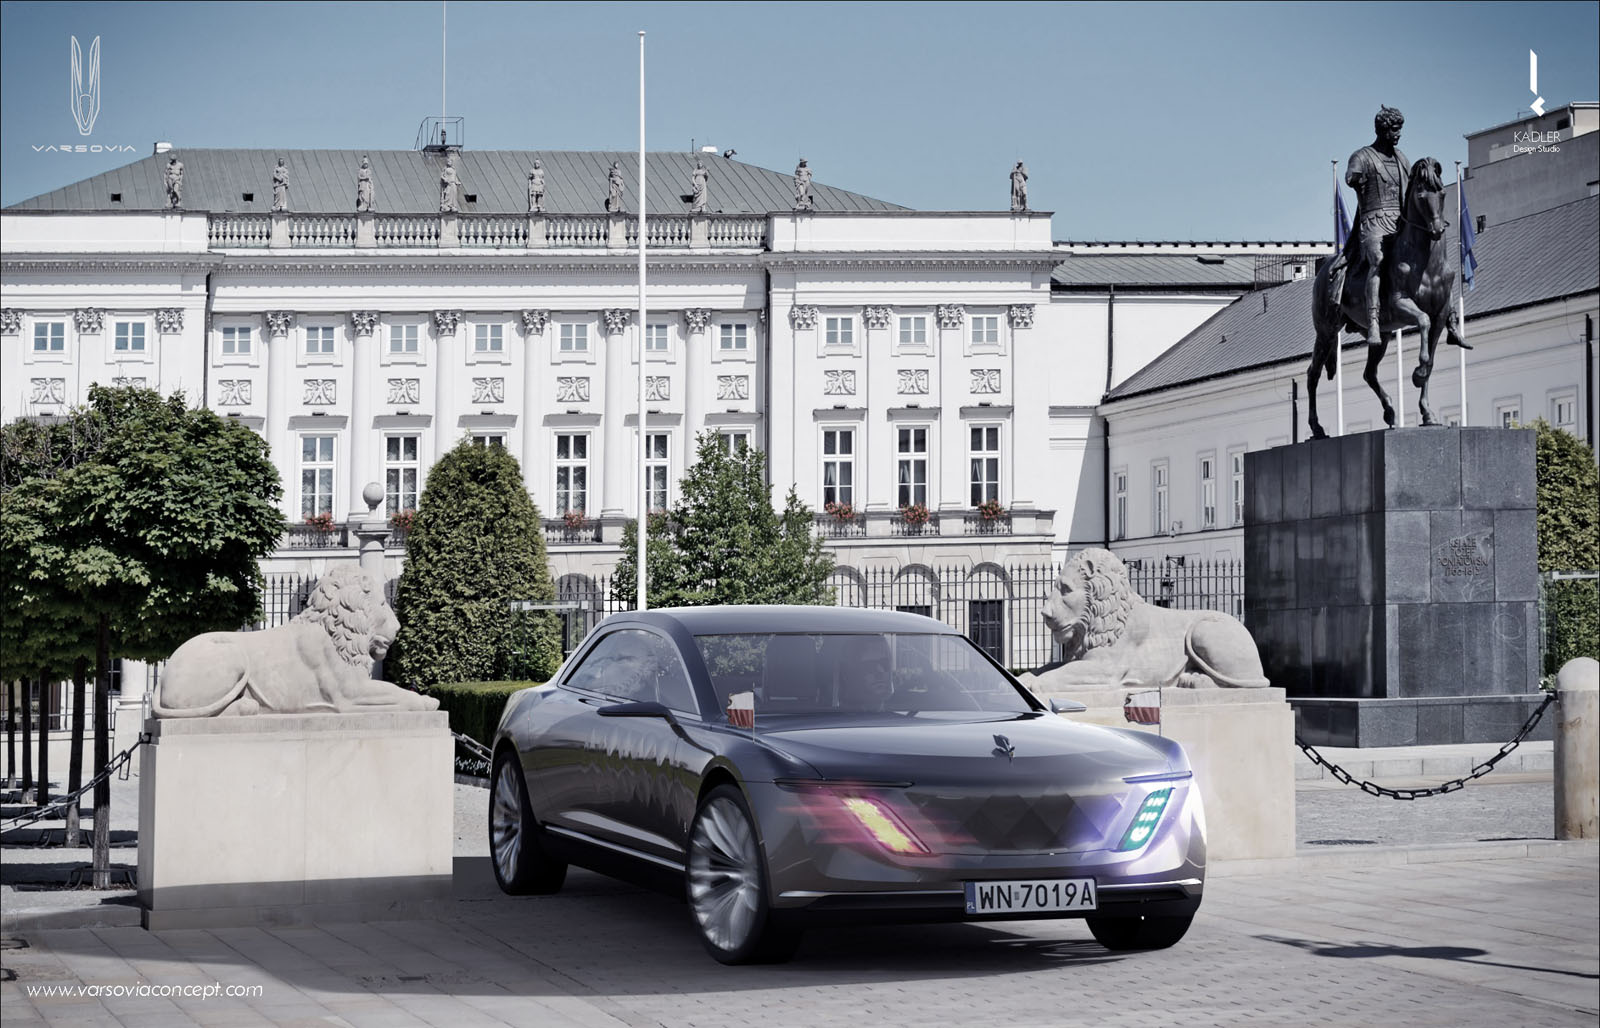 hyper-futiristic polish varsovia concept car could be produced